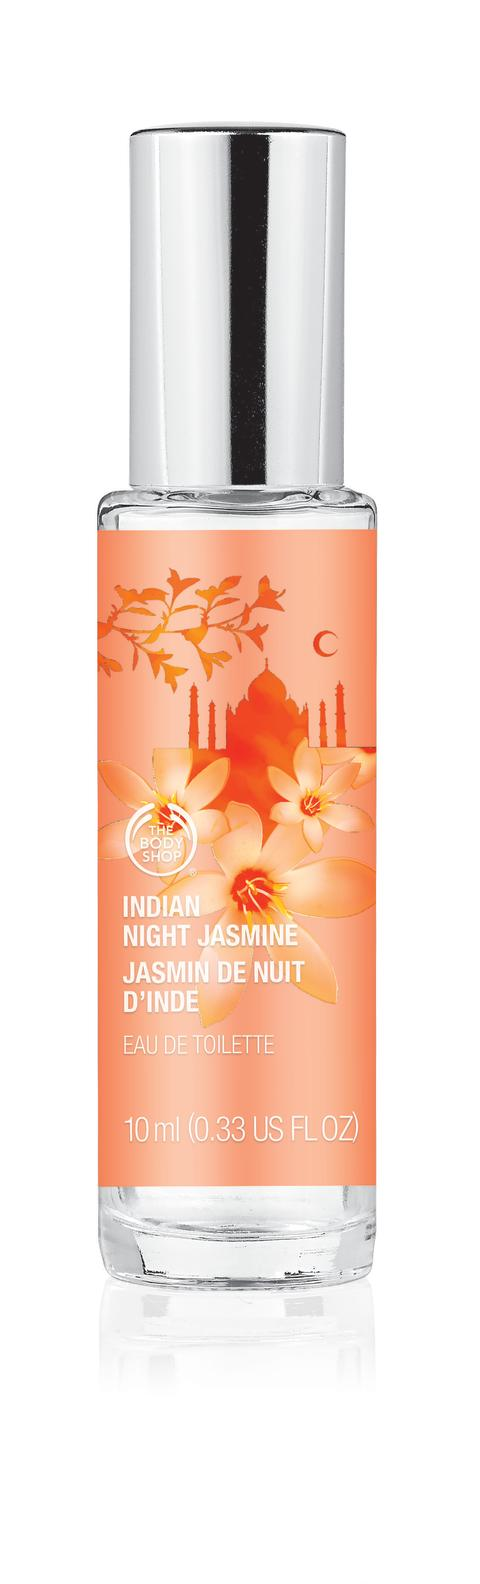 Indian Night Jasmine Mini EdT